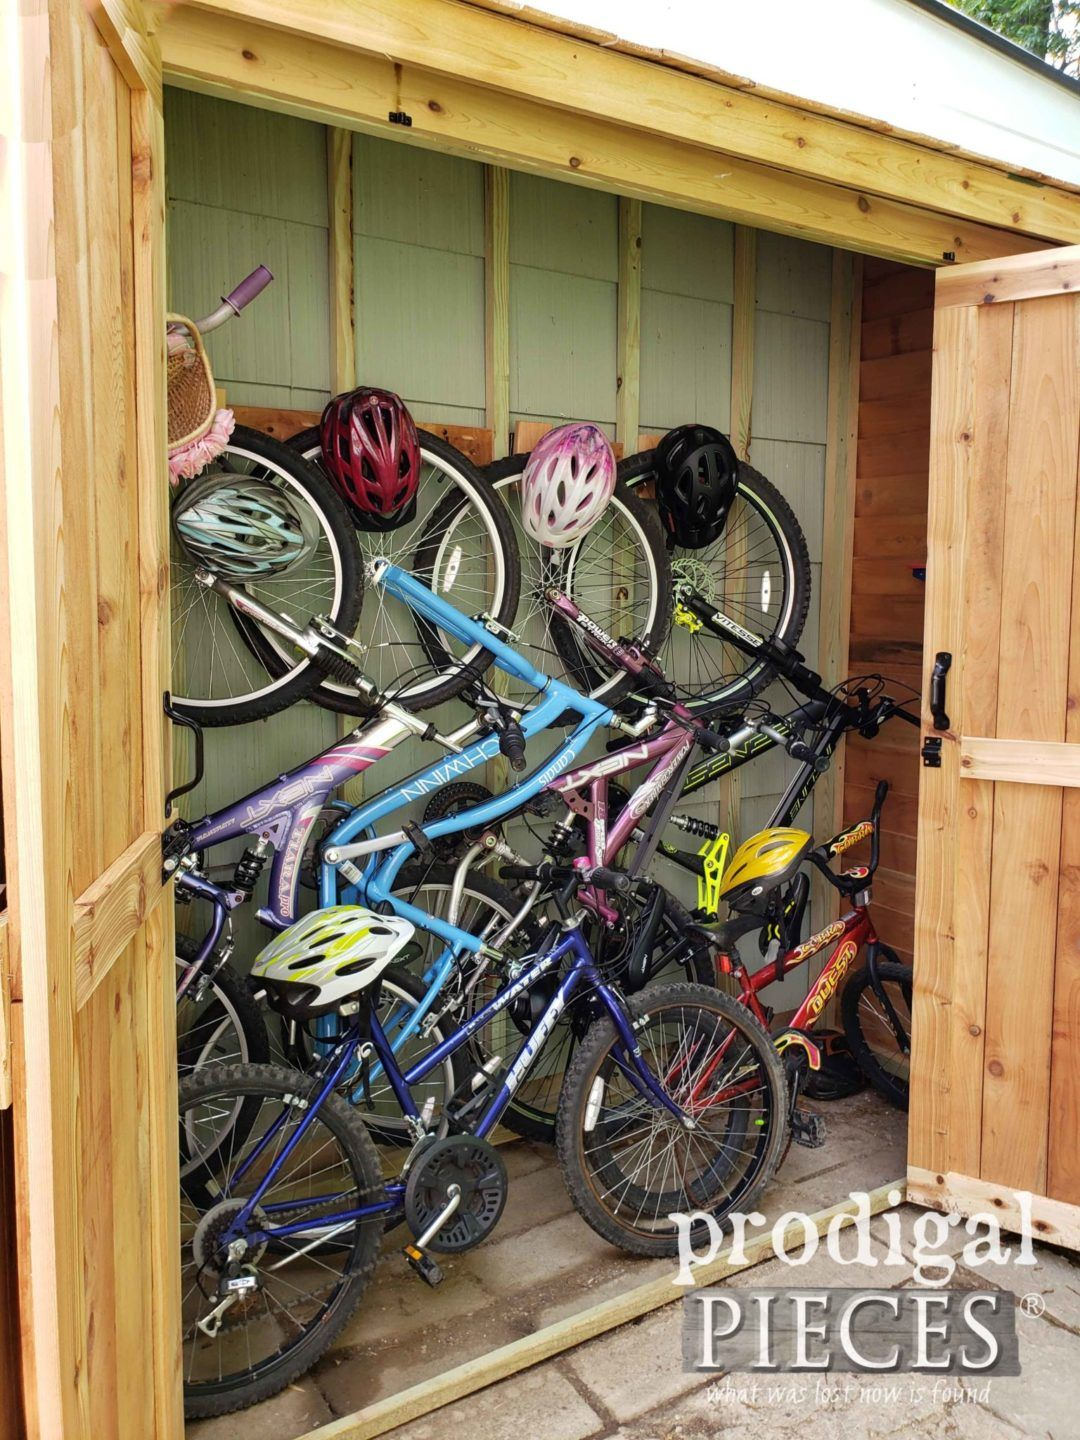 Diy Bike Garden Shed Tutorial From Cedar Wood Prodigal Pieces In 2020 Bike Storage Diy Bicycle Storage Shed Bike Storage